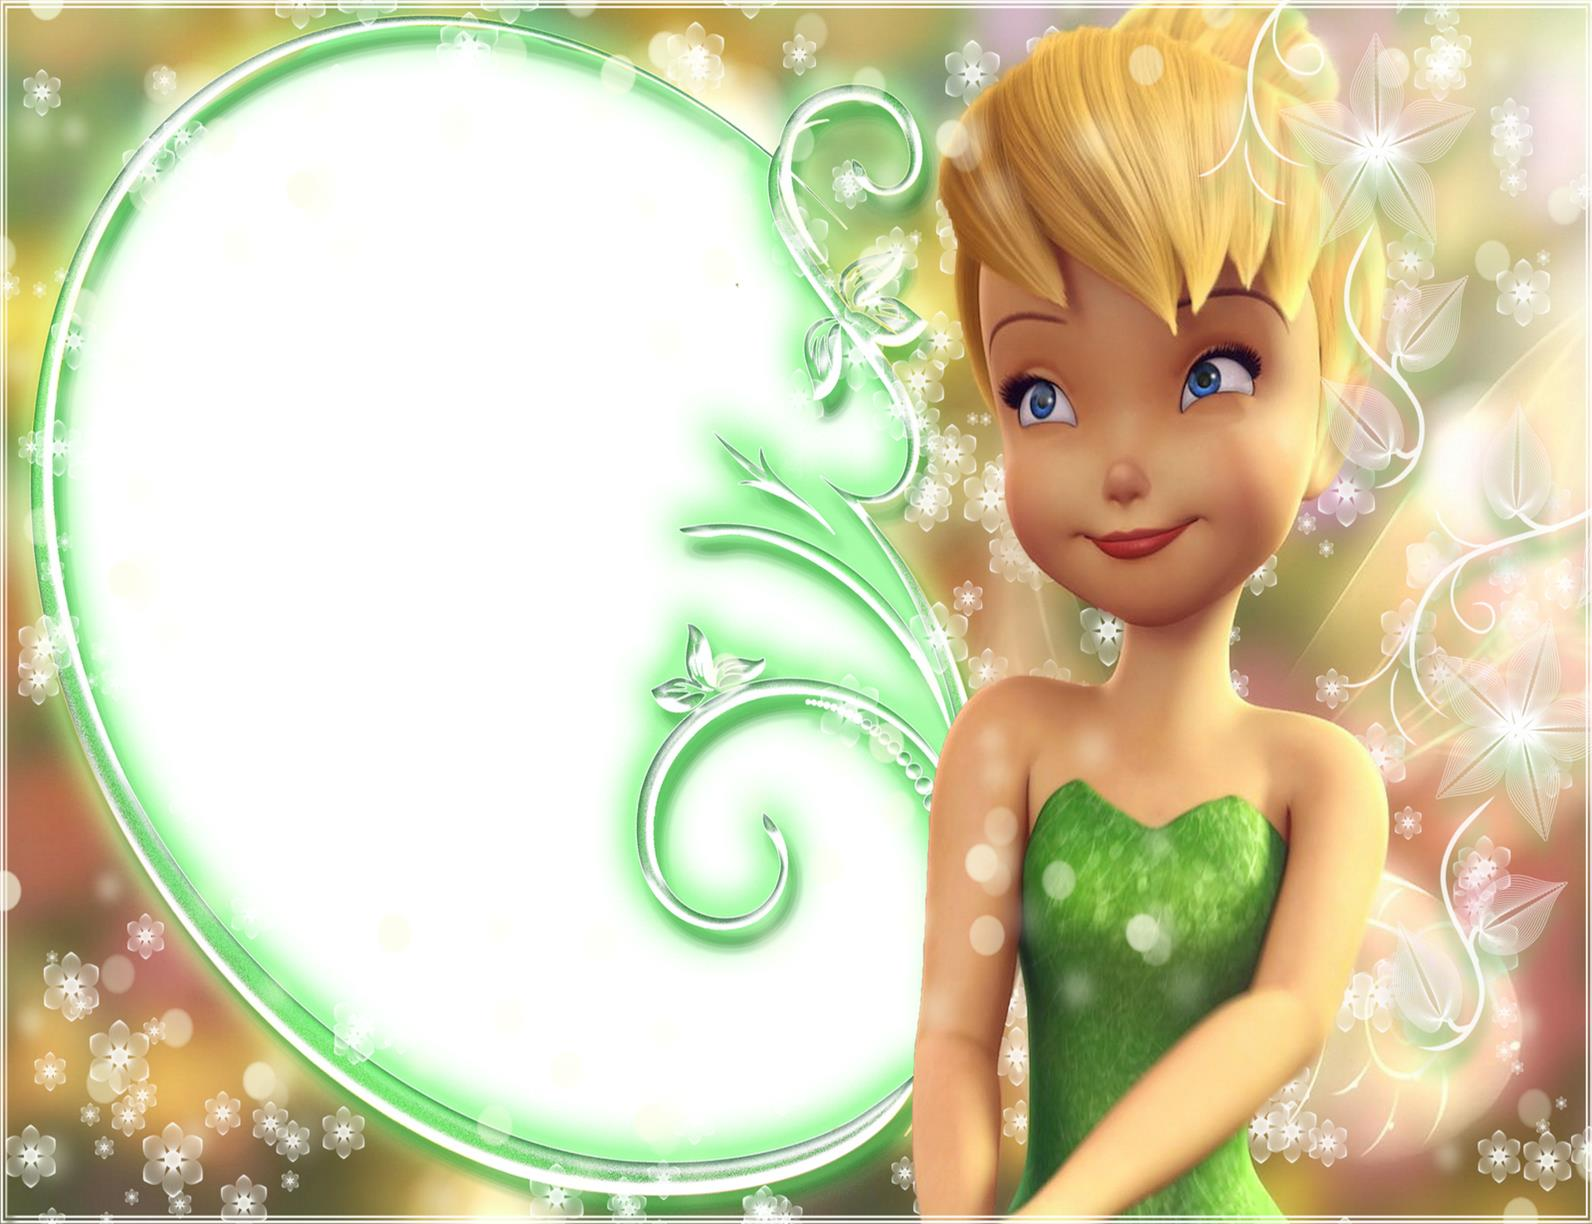 Tinkerbell images tink HD wallpaper and background photos ...